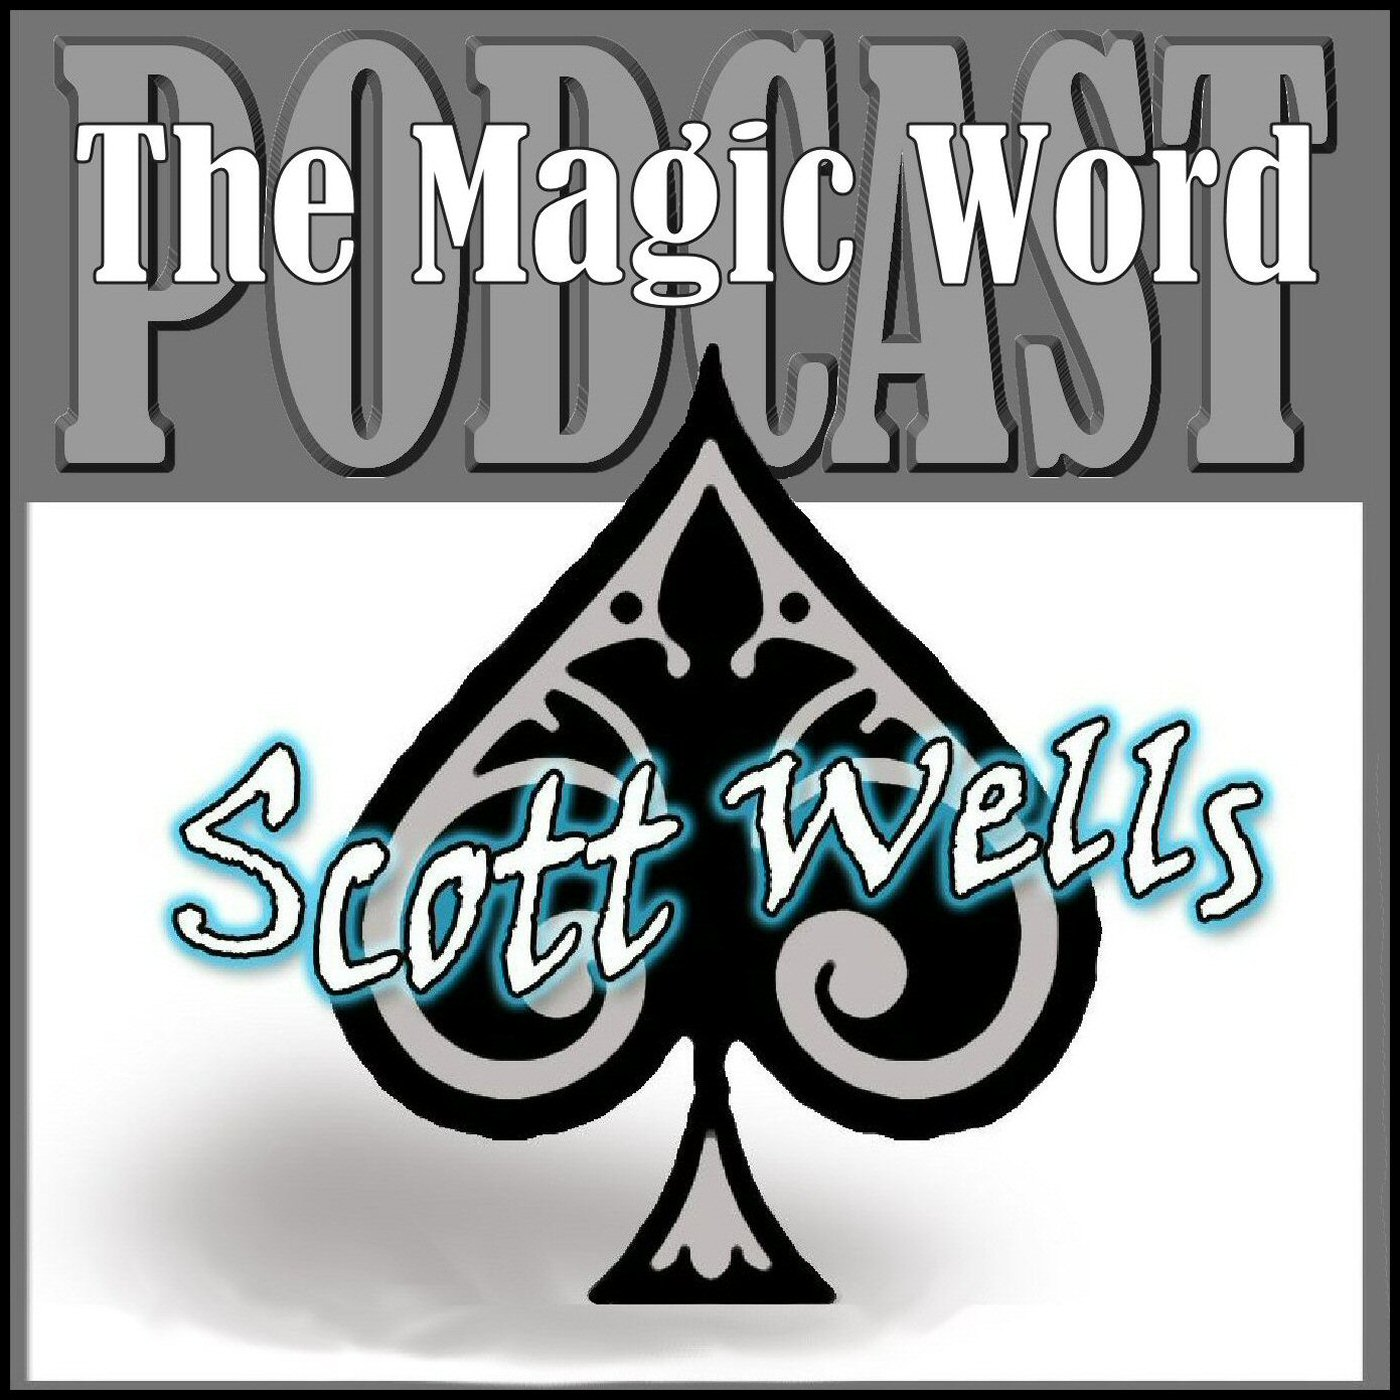 The magic word for magicians about magicians by a magician by the magic word for magicians about magicians by a magician by scott wells on apple podcasts fandeluxe Image collections